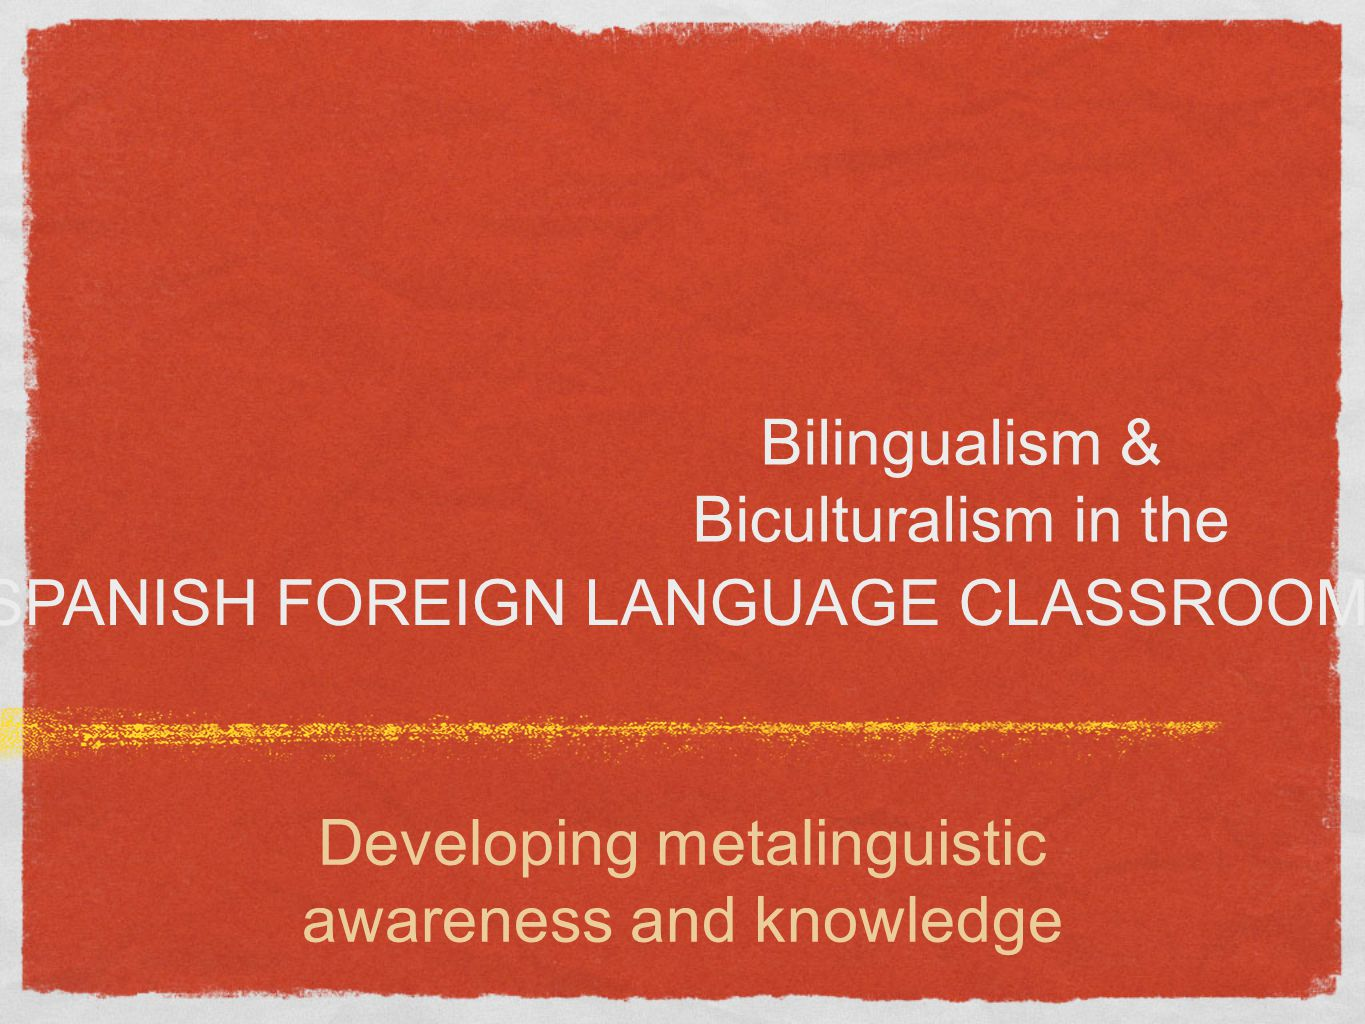 Developing metalinguistics